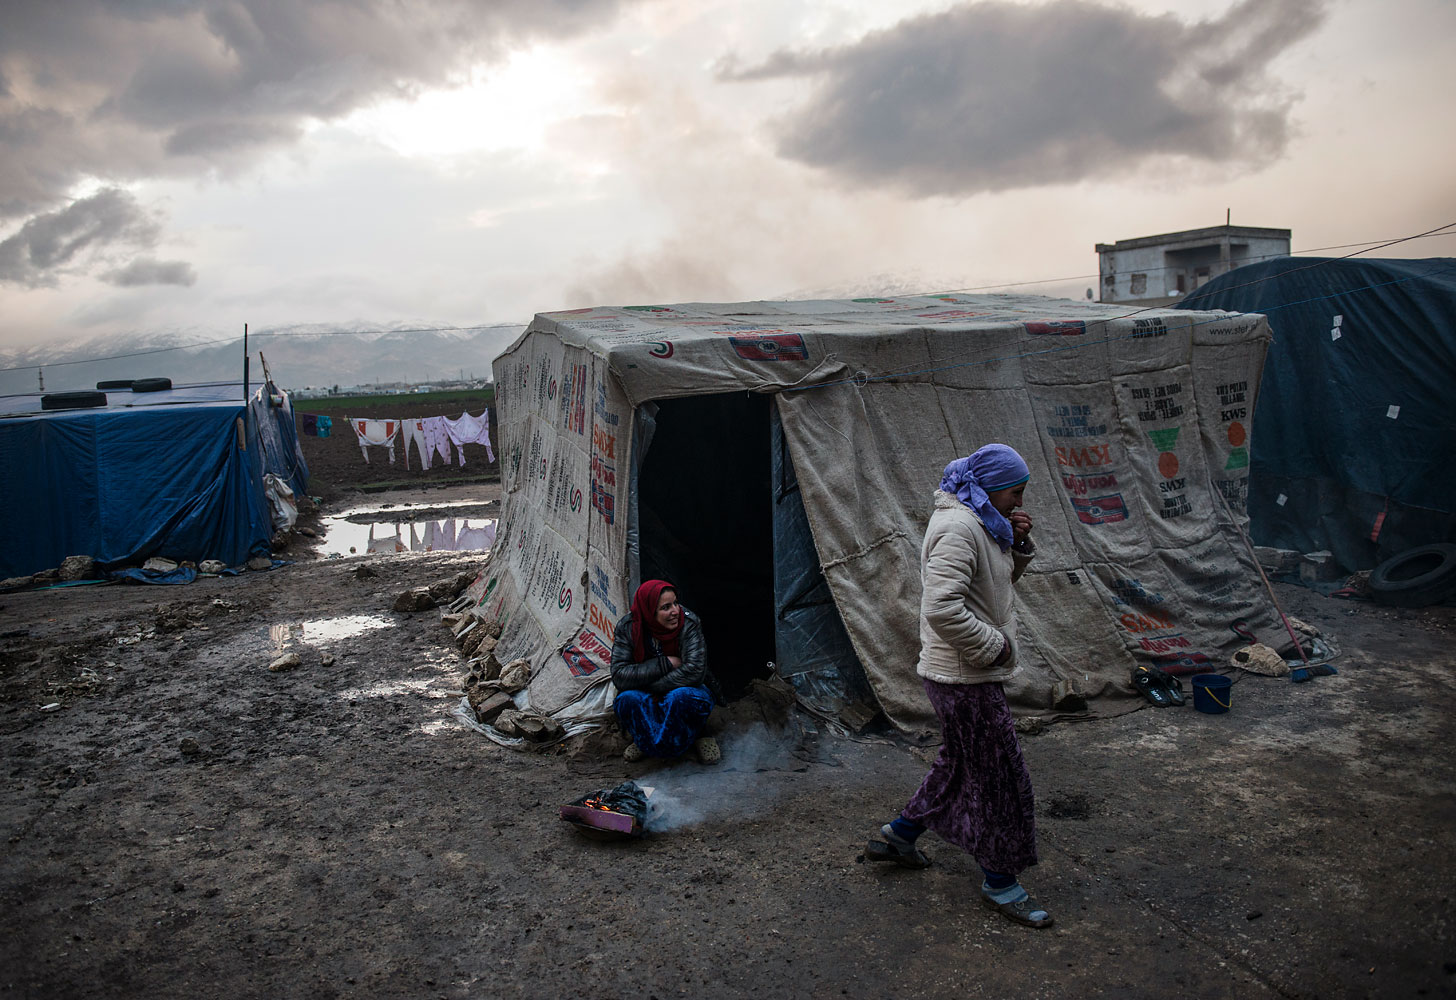 Seventy families live by the shell of an abandoned onion-processing factory, trudging through the mud in flip-flops. Many had to bail water from their tents after a rainstorm. They pay between US$50 and US$200 a month to live here in Faida, Bekaa Valley.